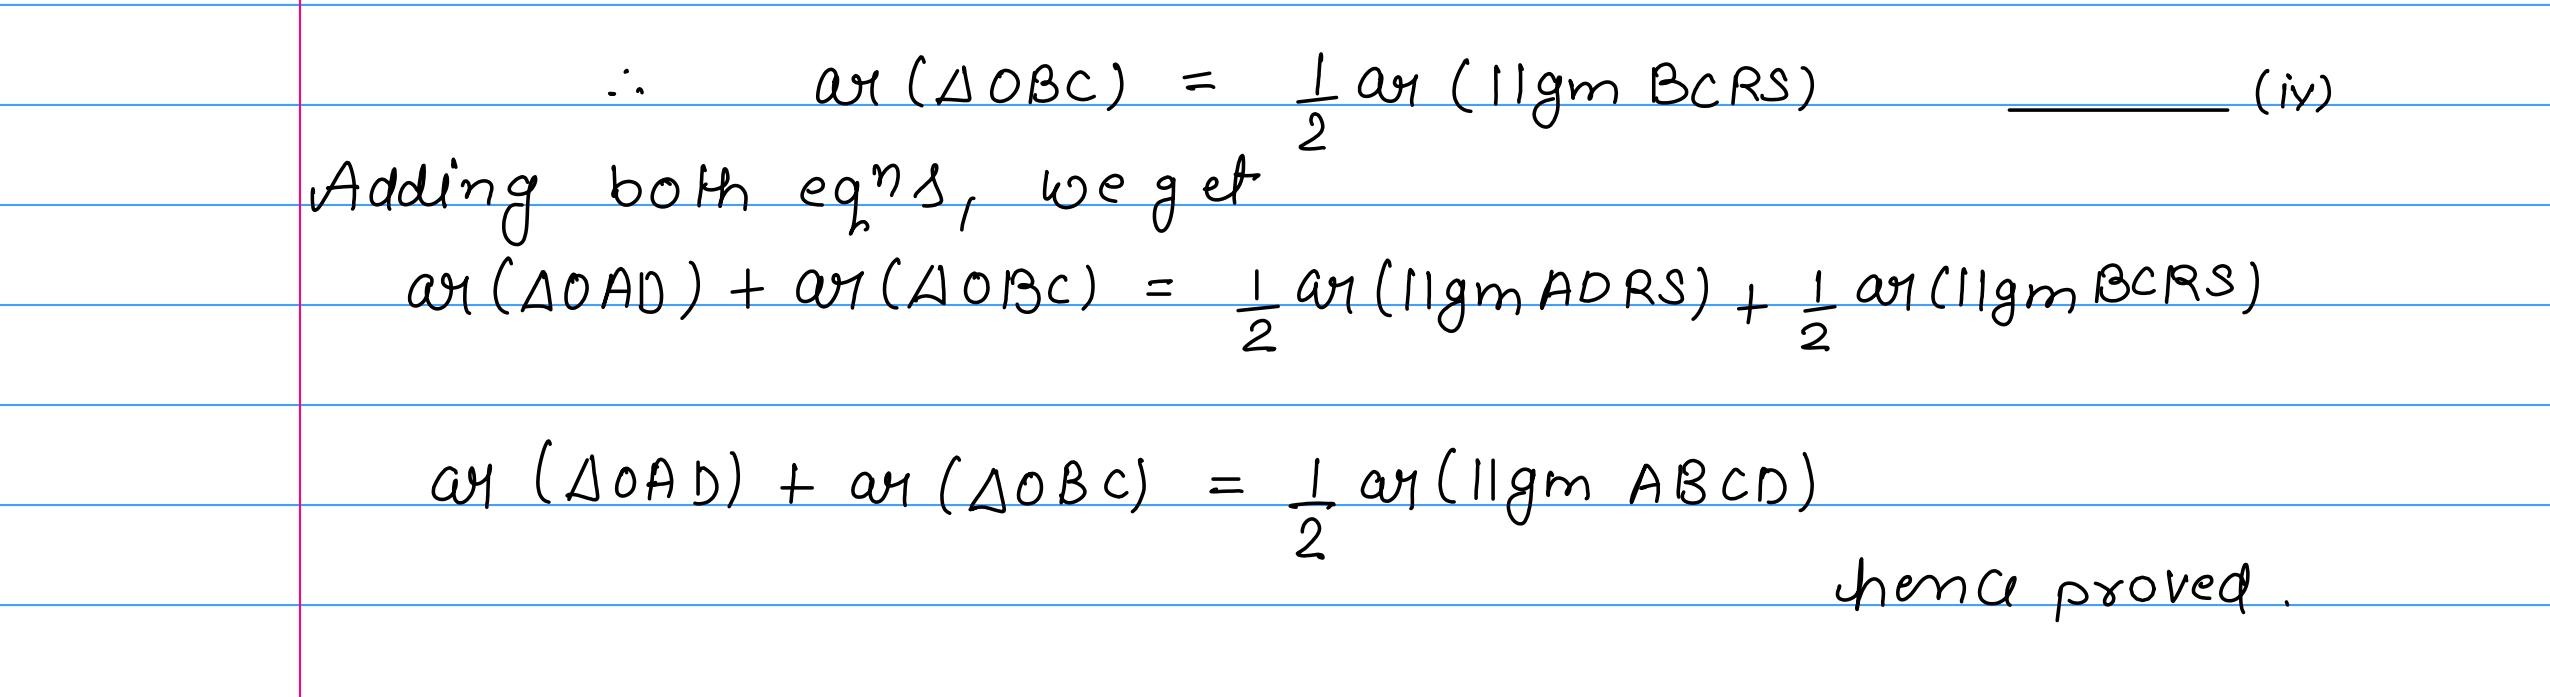 corrected solution exercise-10A area of llgm_14